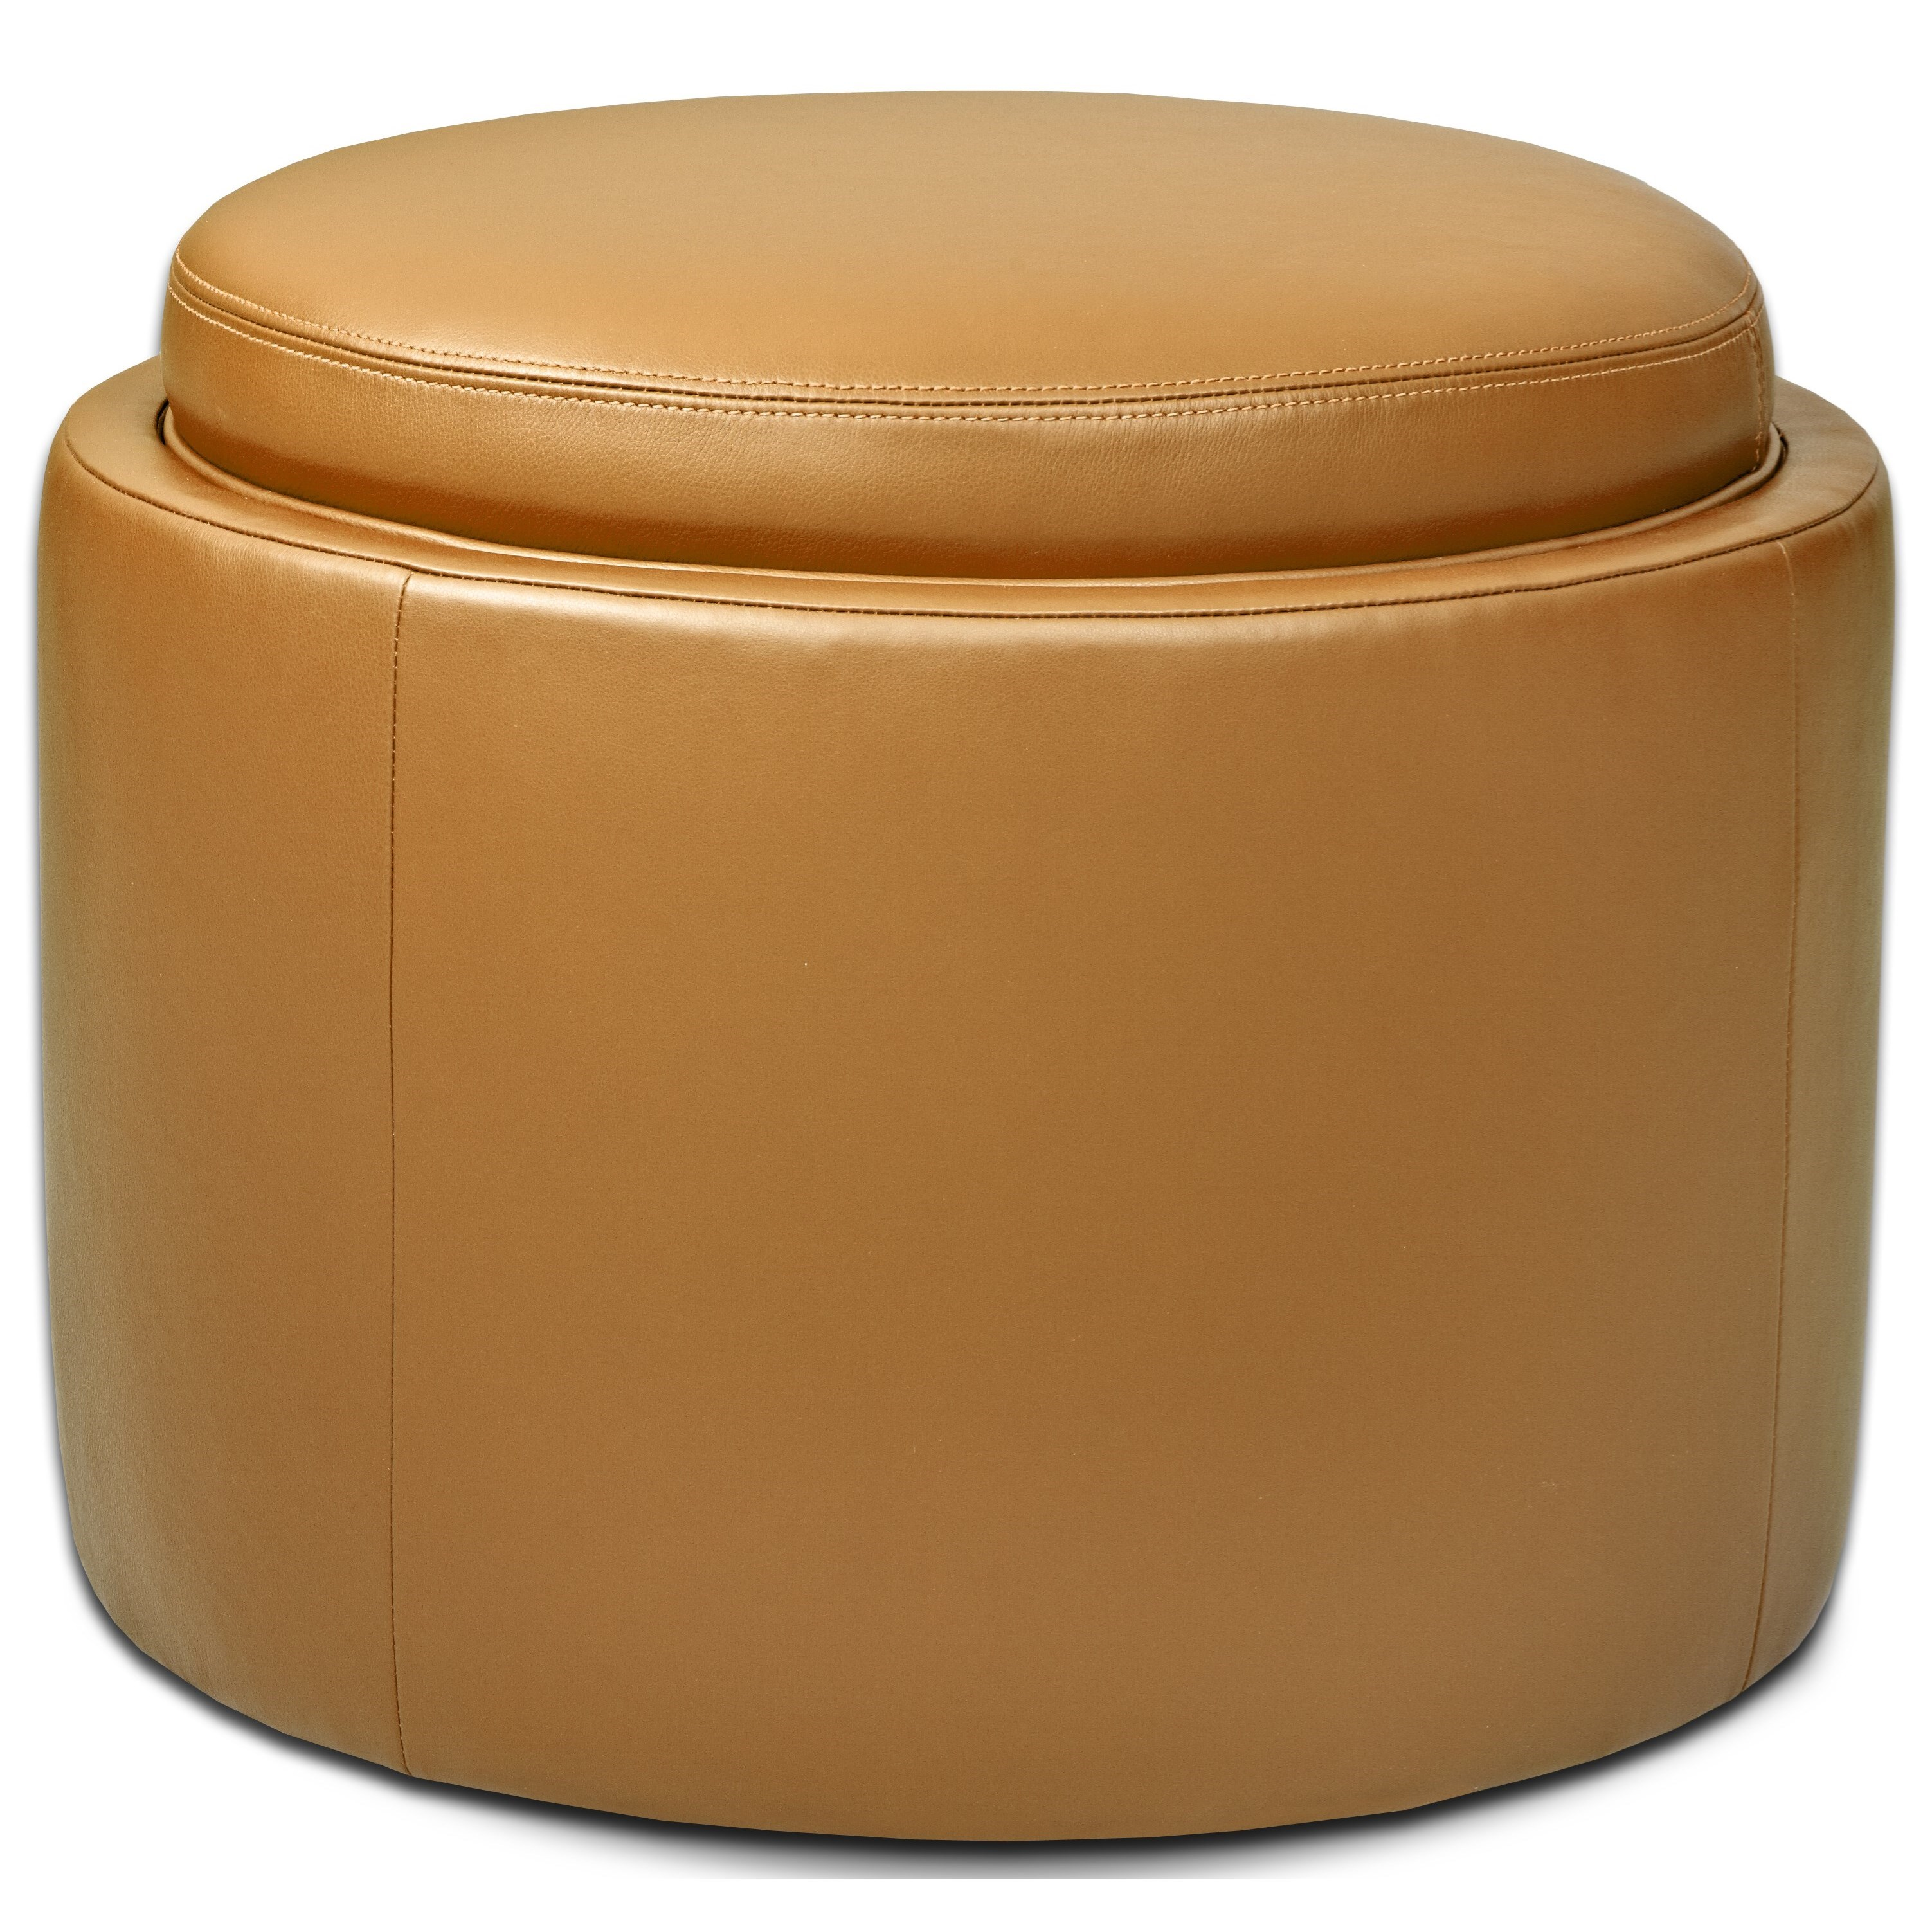 Uno Round Storage Ottoman by American Leather at Jacksonville Furniture Mart